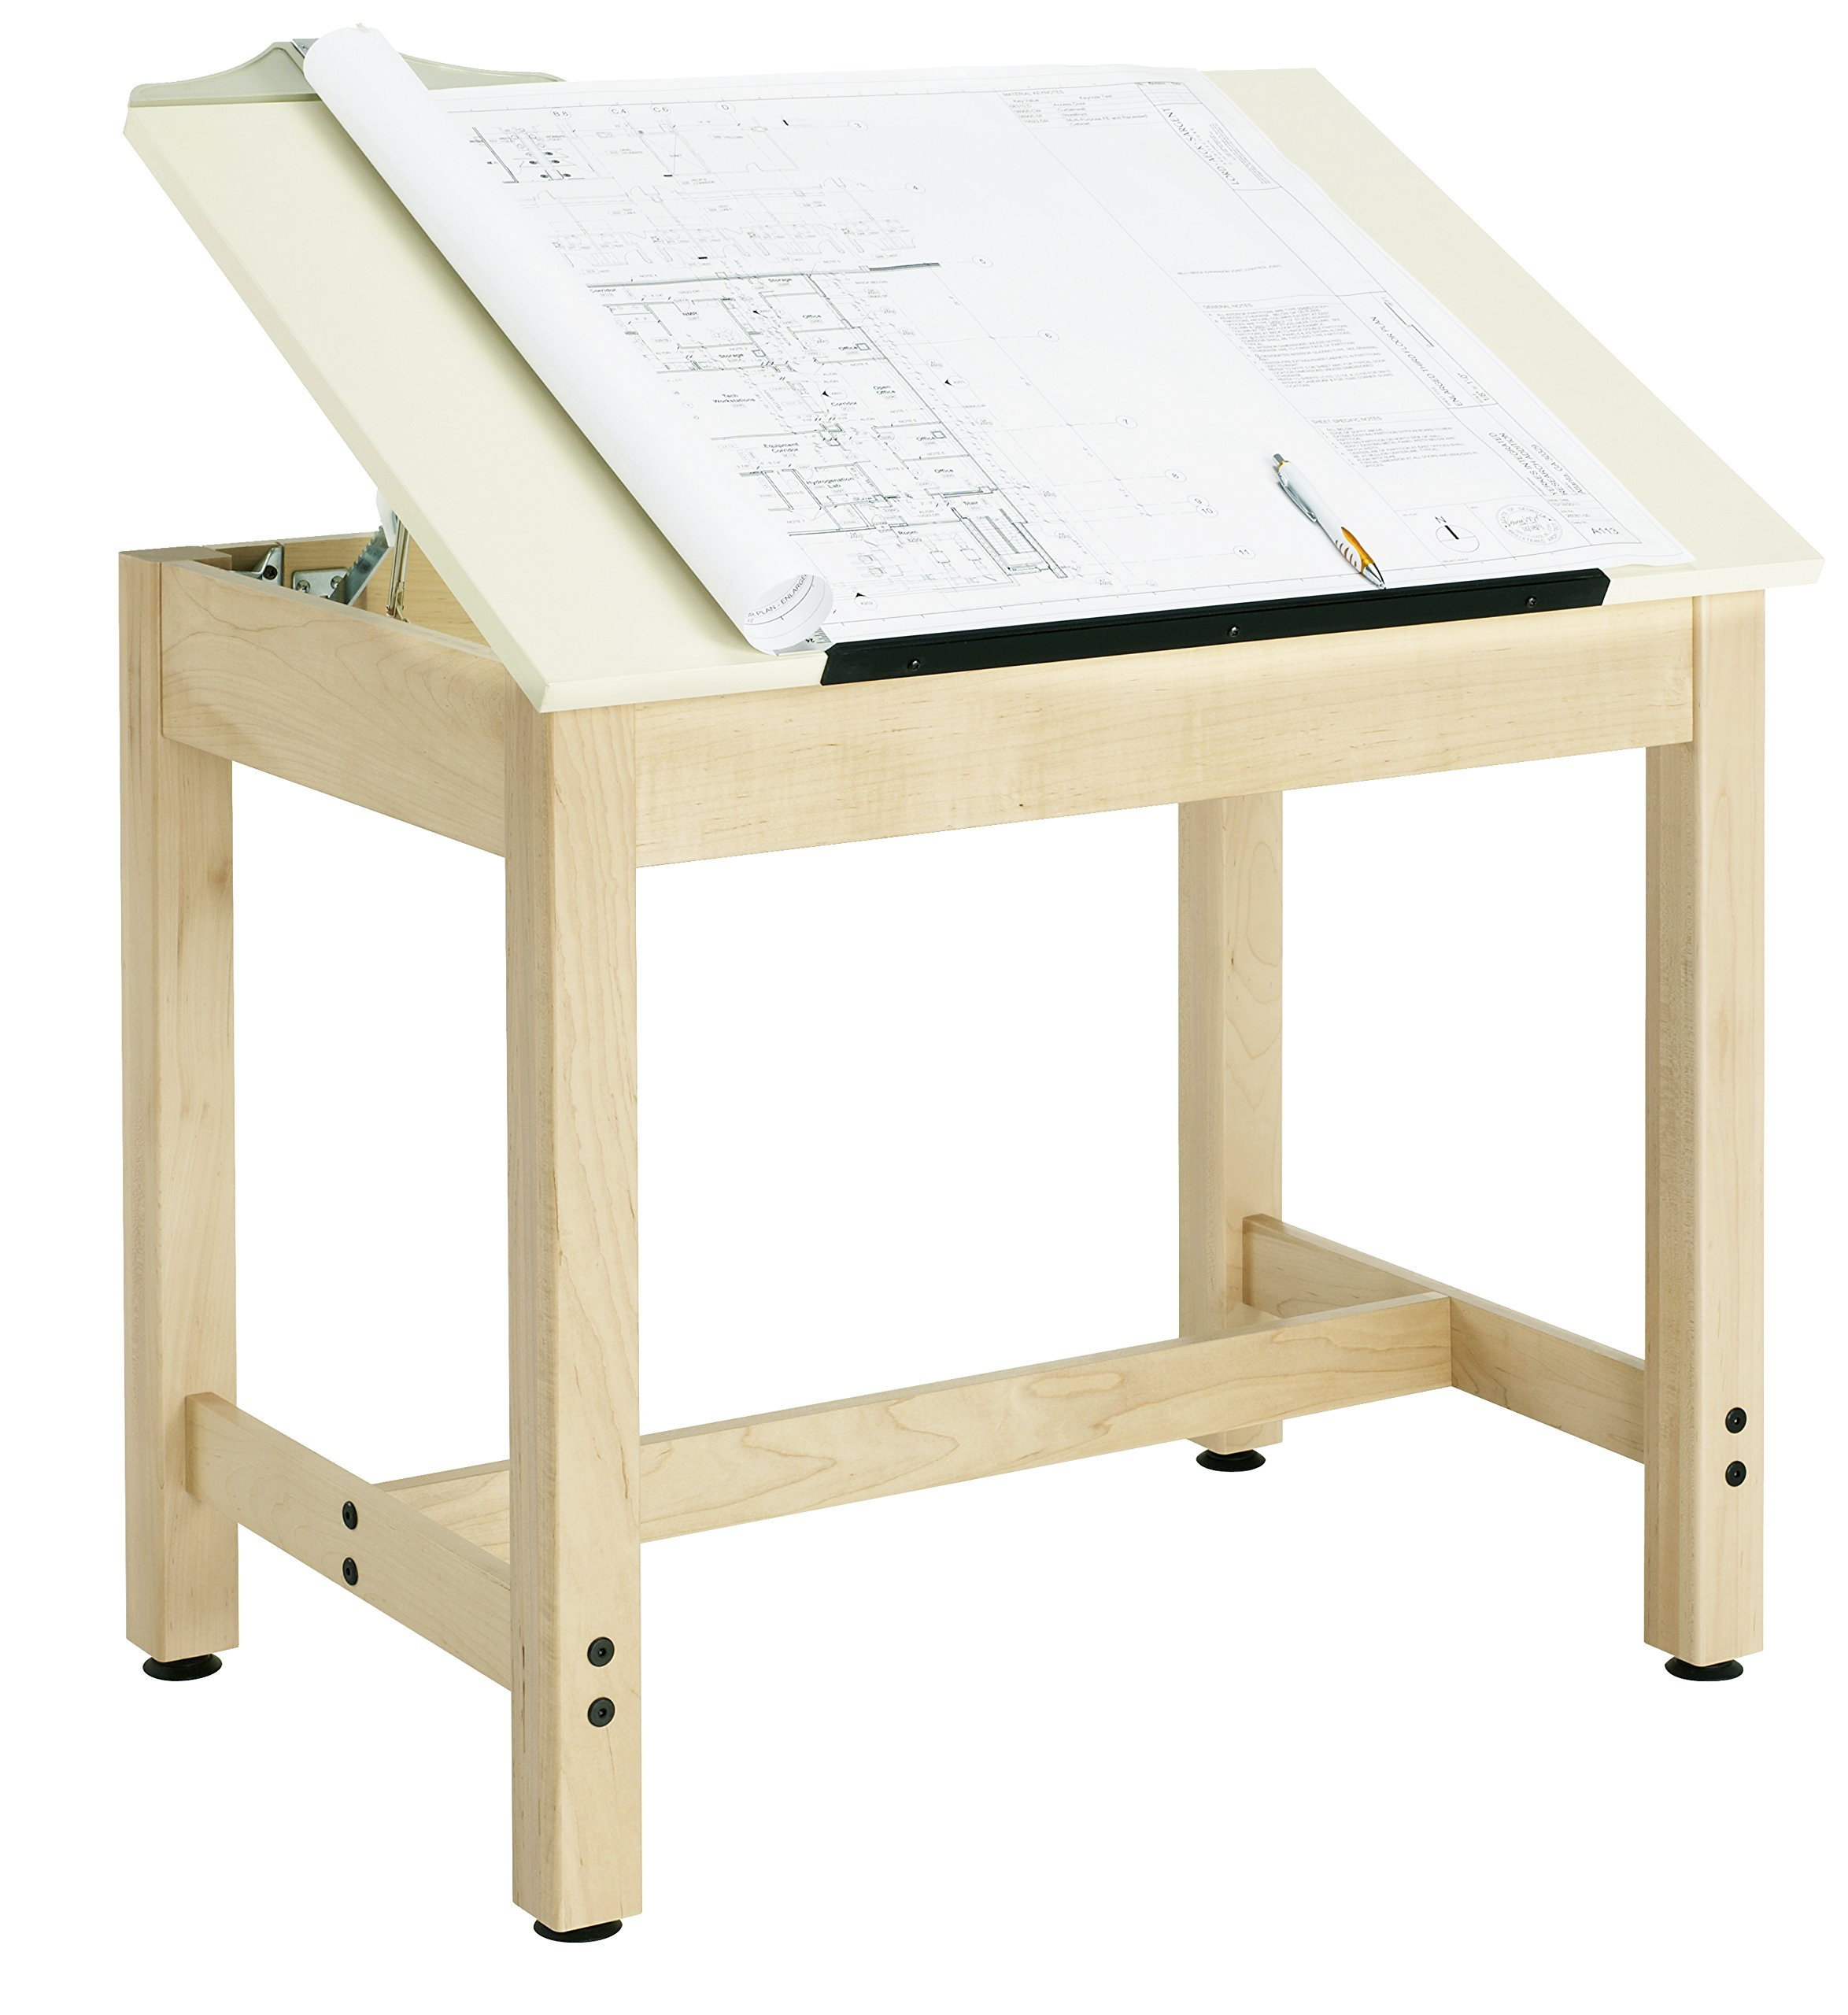 Diversified Woodcrafts DT-9A30 UV Finish Solid Maple Wood Art/Drafting Table with Plastic Laminate Top, 36'' Width x 29-3/4'' Height x 24'' Depth